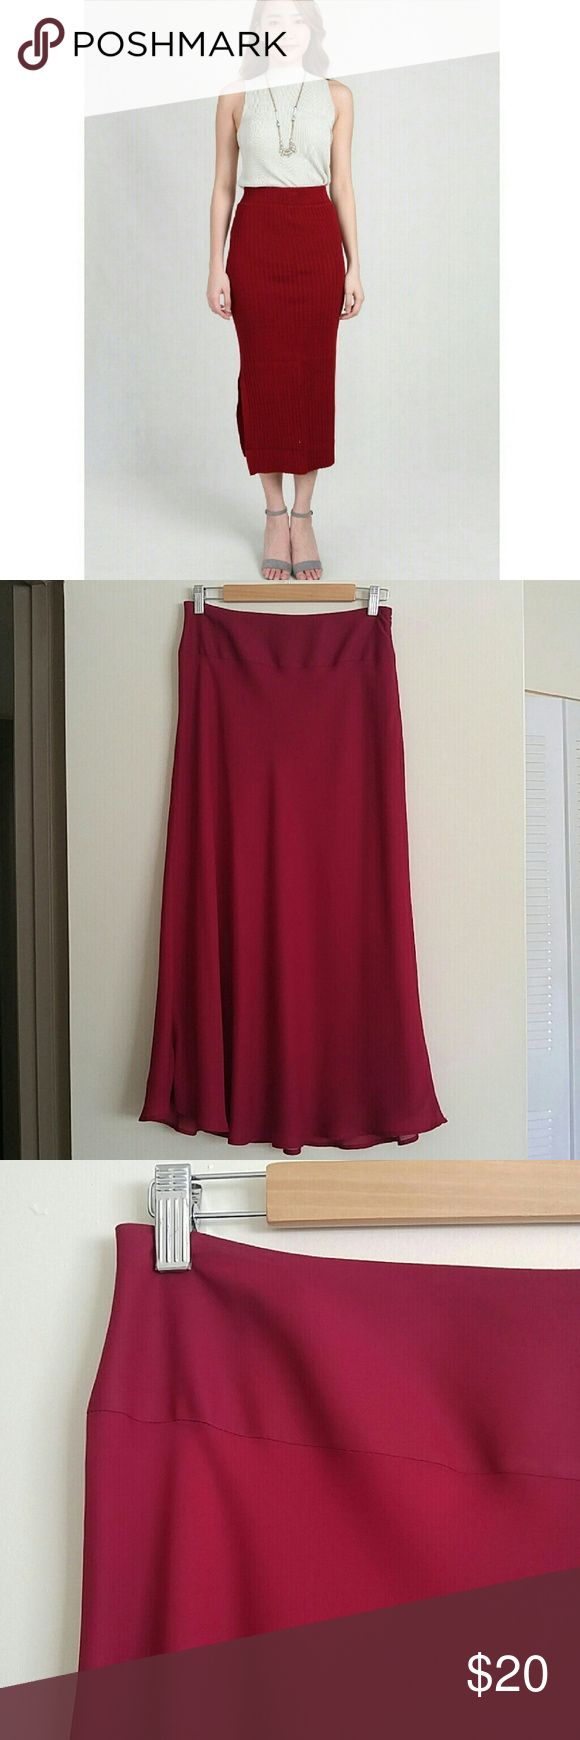 "NWOT Croft & Barrow Wine Red Midi Skirt This skirt looks and feels so rich & classy! Can be a midi or maxi depending on your height. Deep burgundy red color called ""Rumba Red."" Invisible side zip. Fully lined. Feels like silky soft chiffon. Slight flare at the bottom gives it a fitted almost tulip shape. Never worn! Bring out your pearls for this one!   {Measurements} Waist: 28"" Length: 35.5""  {Materials} 100% Polyester croft & barrow Skirts"